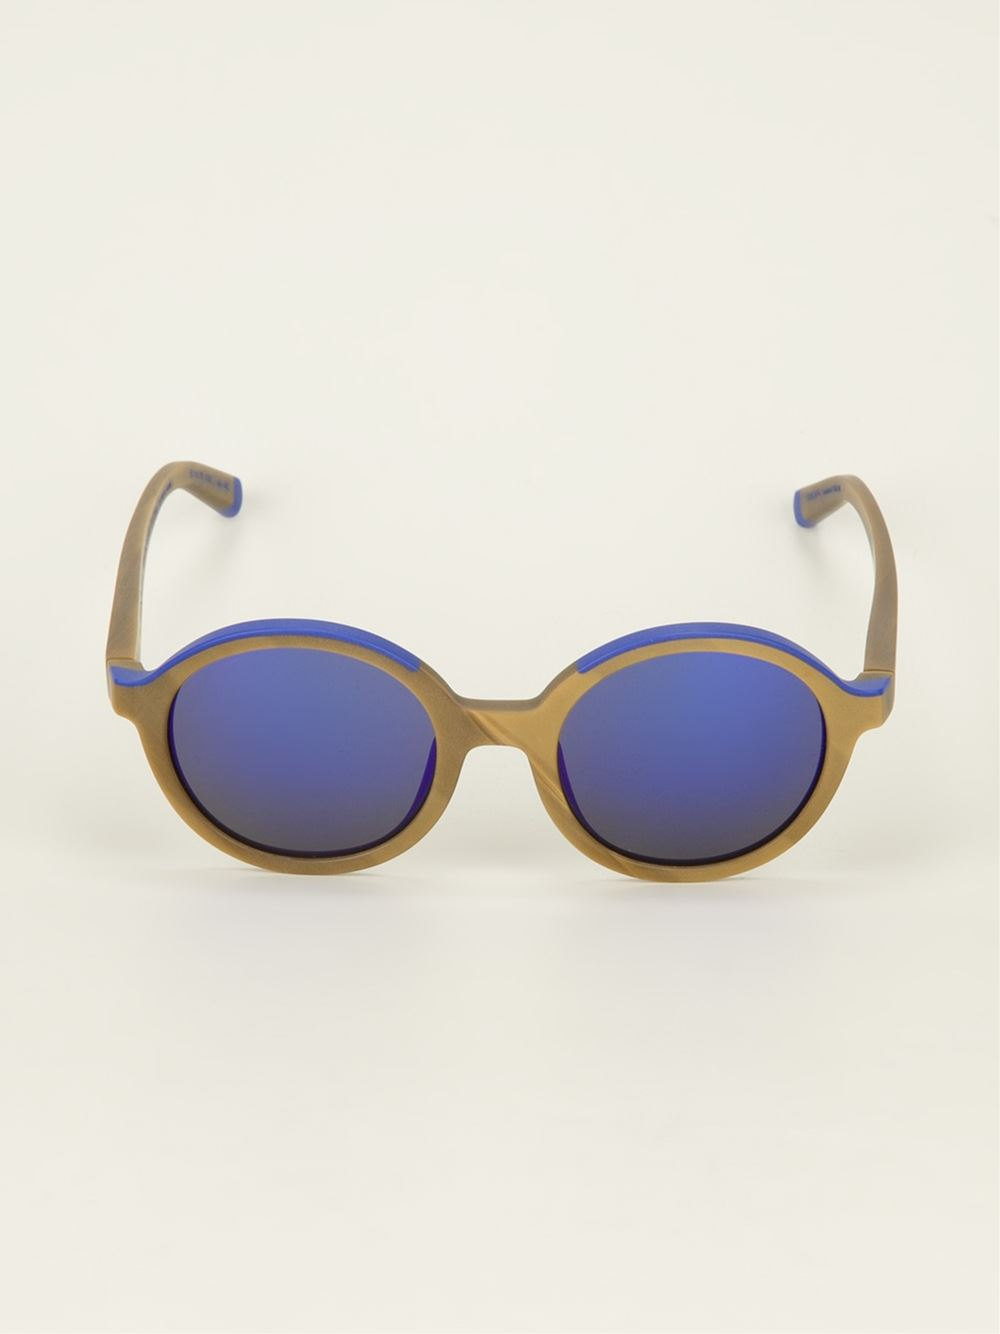 Etnia Barcelona 'international Klein Blue Collection' Sunglasses - Arropame - Farfetch.com